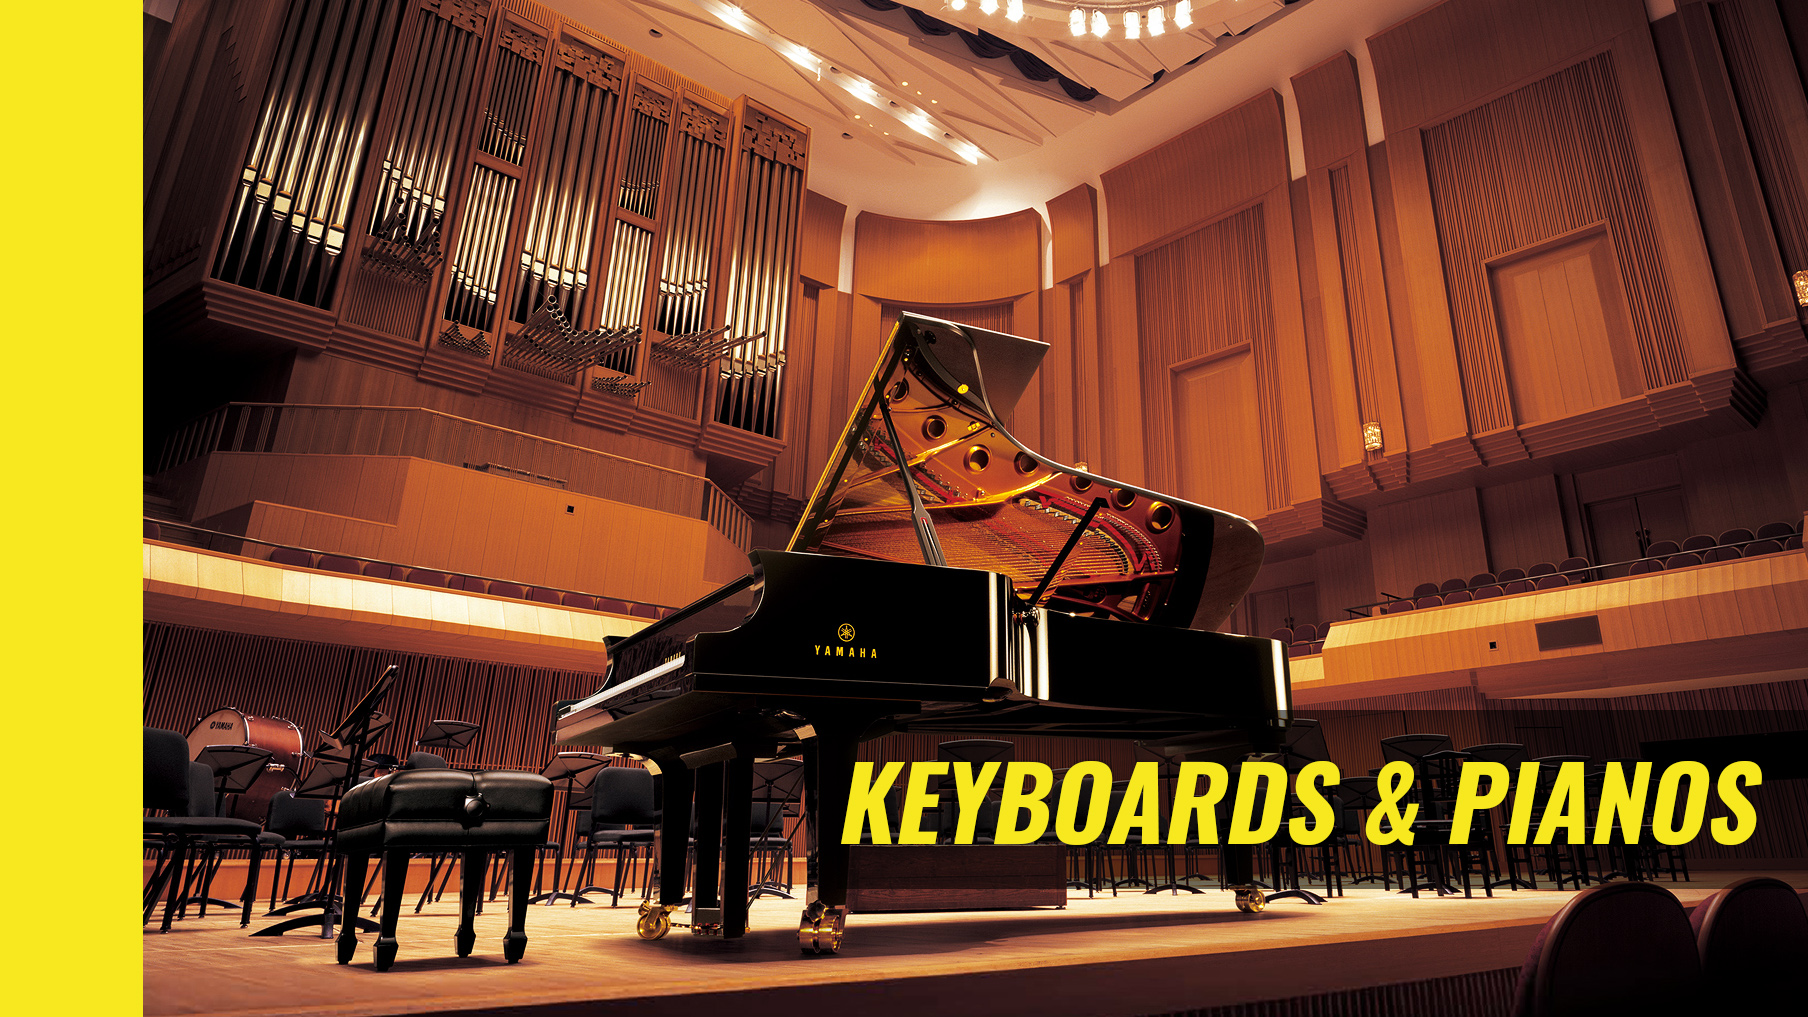 Pianos & Keyboards